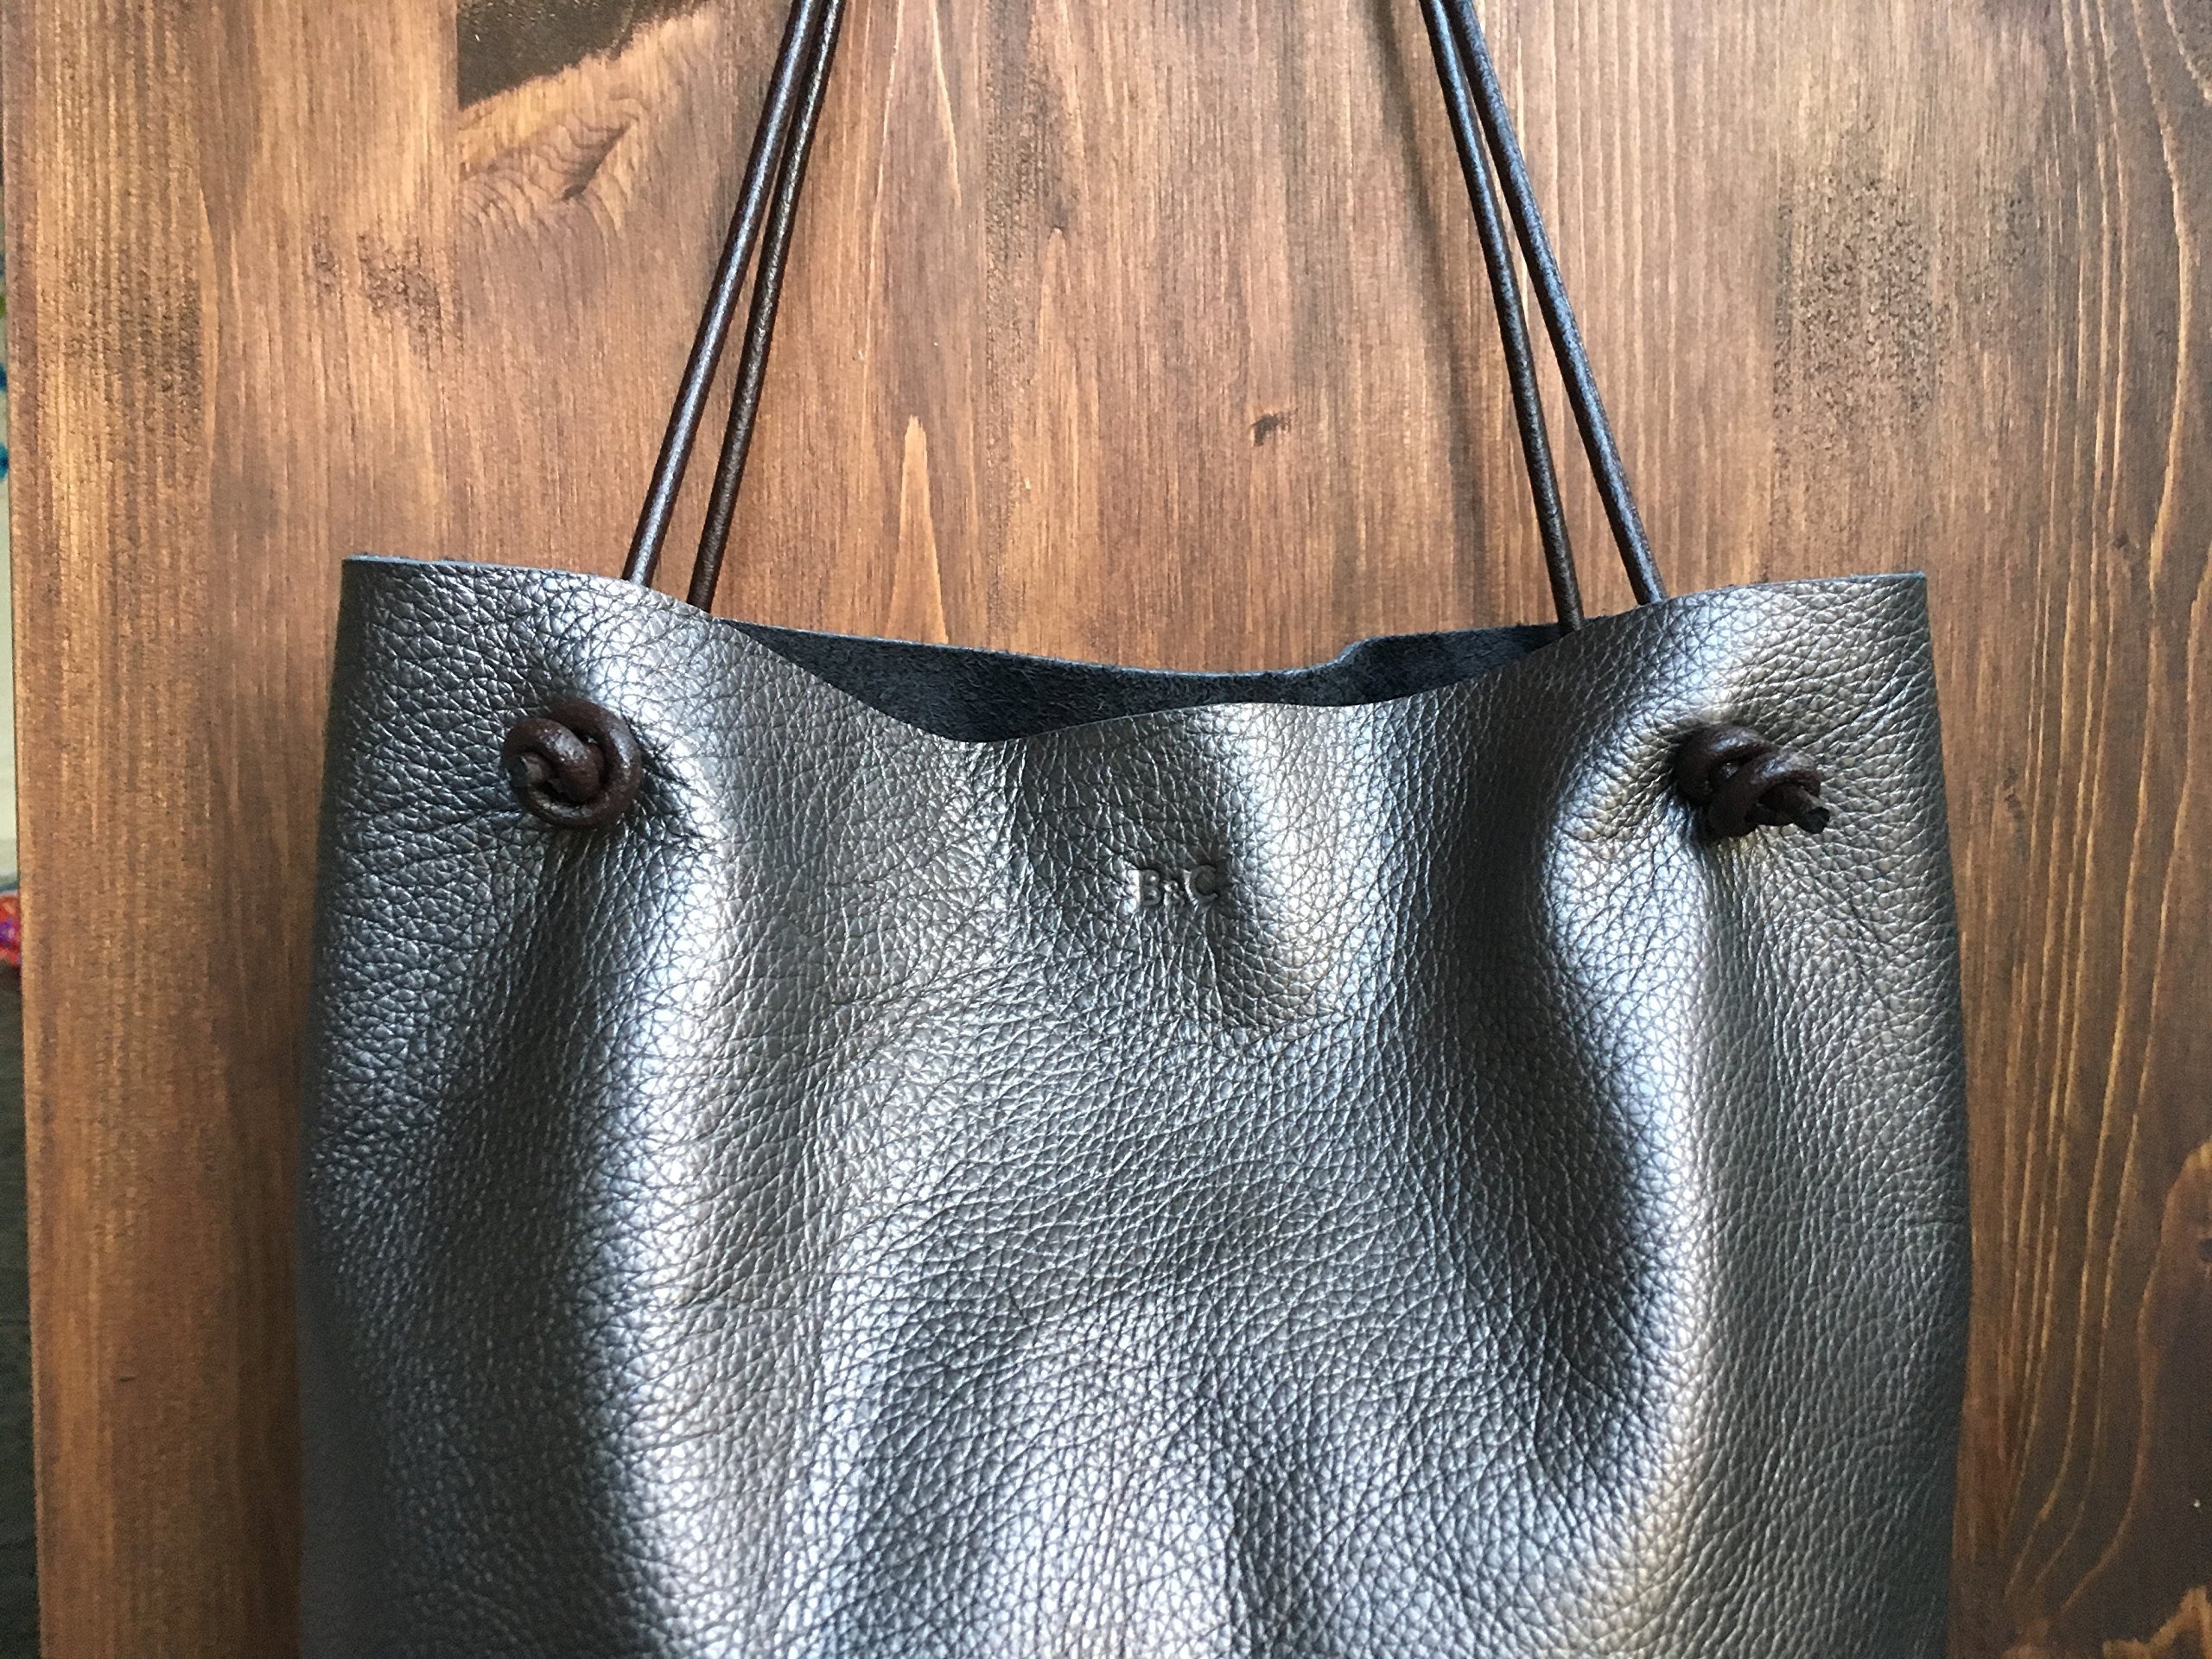 Leather Tote Bag using Italian Leather - handmade-bags